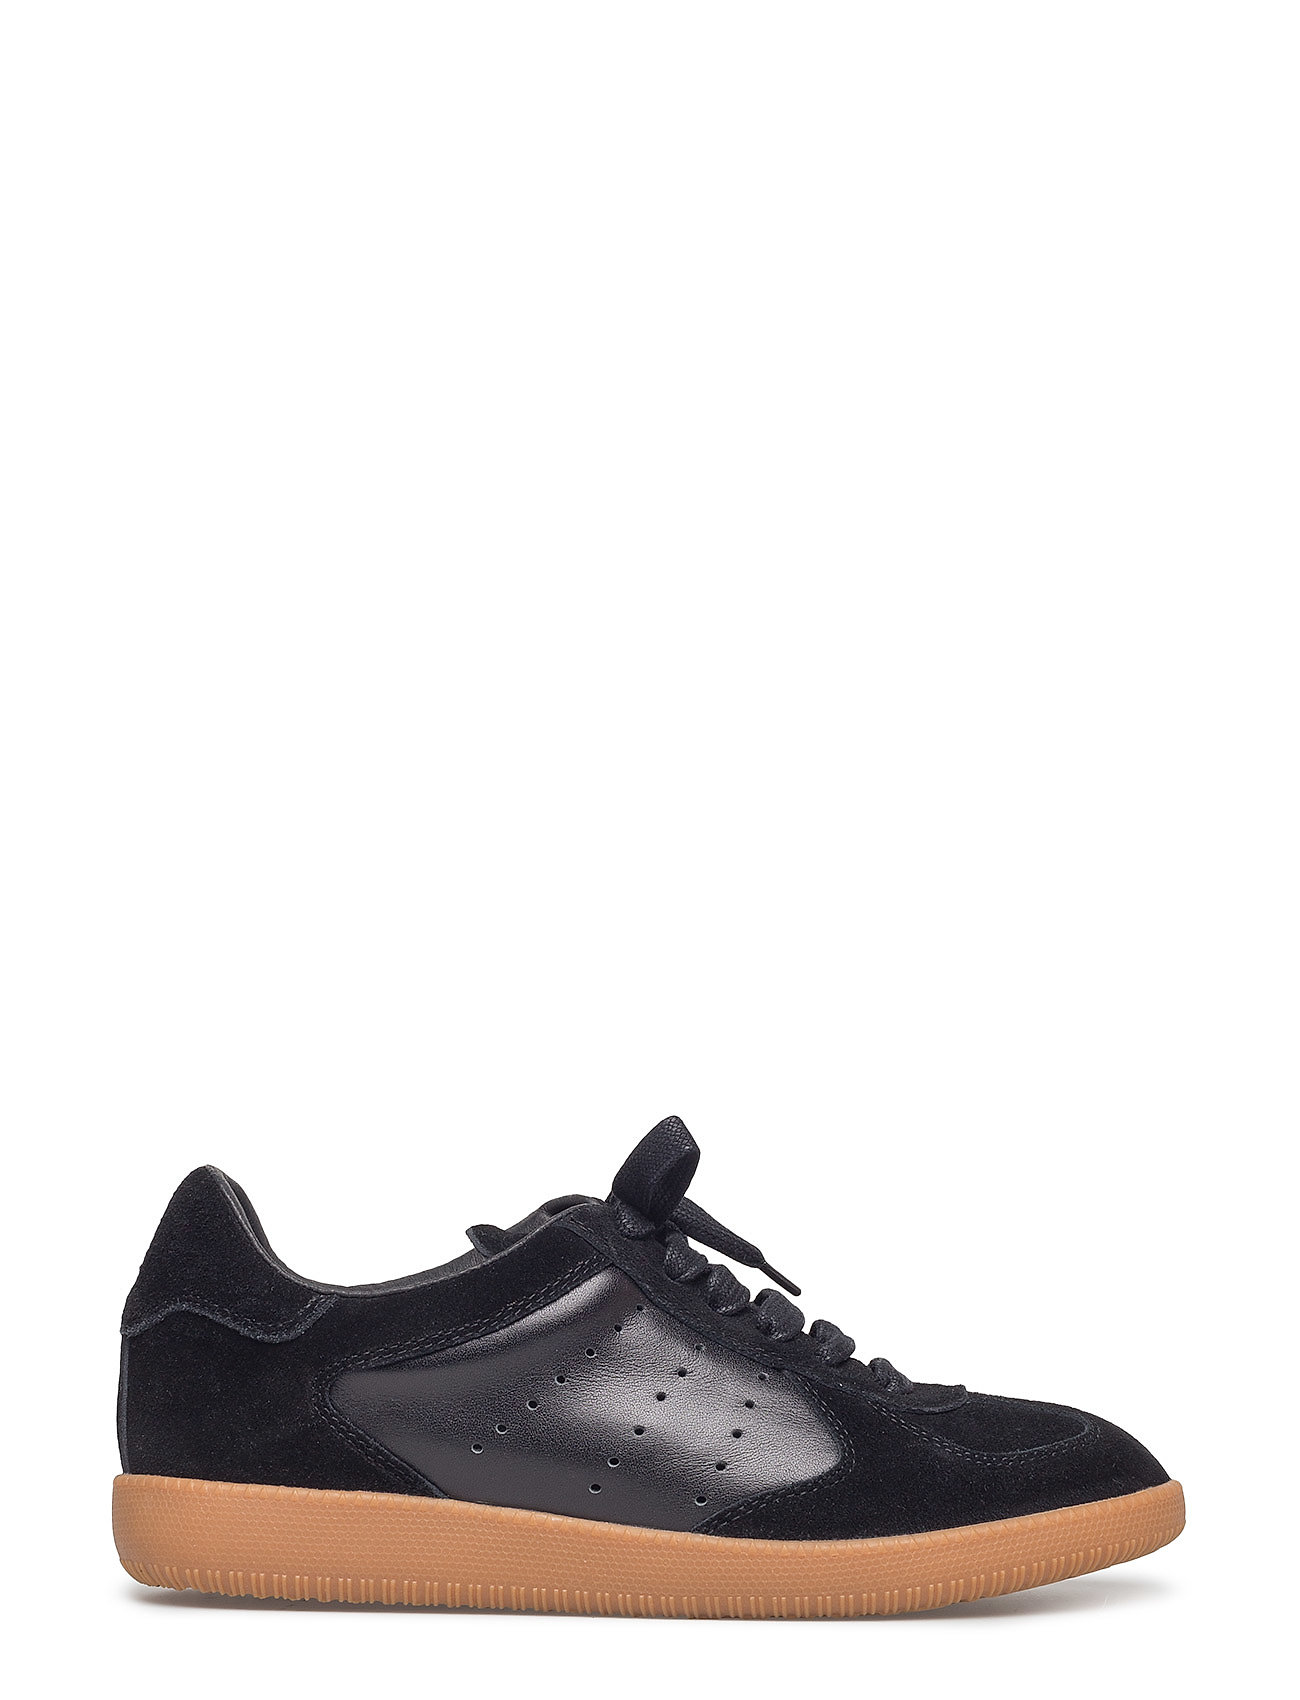 Image of Li Lace Up Low-top Sneakers Sort Shoe The Bear (3523267659)